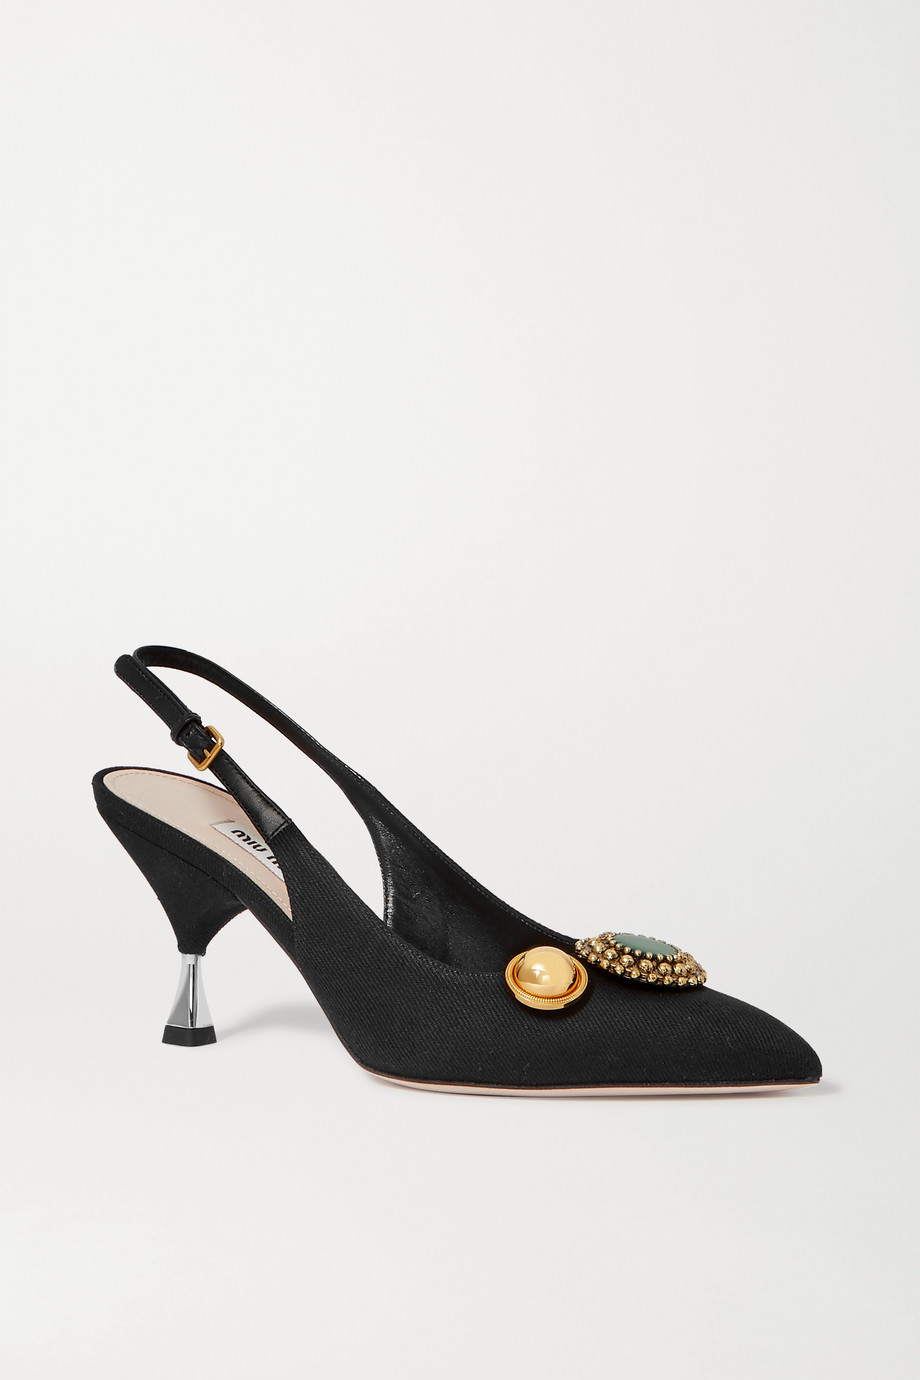 Miu Miu Embellished grosgrain and leather slingback pumps